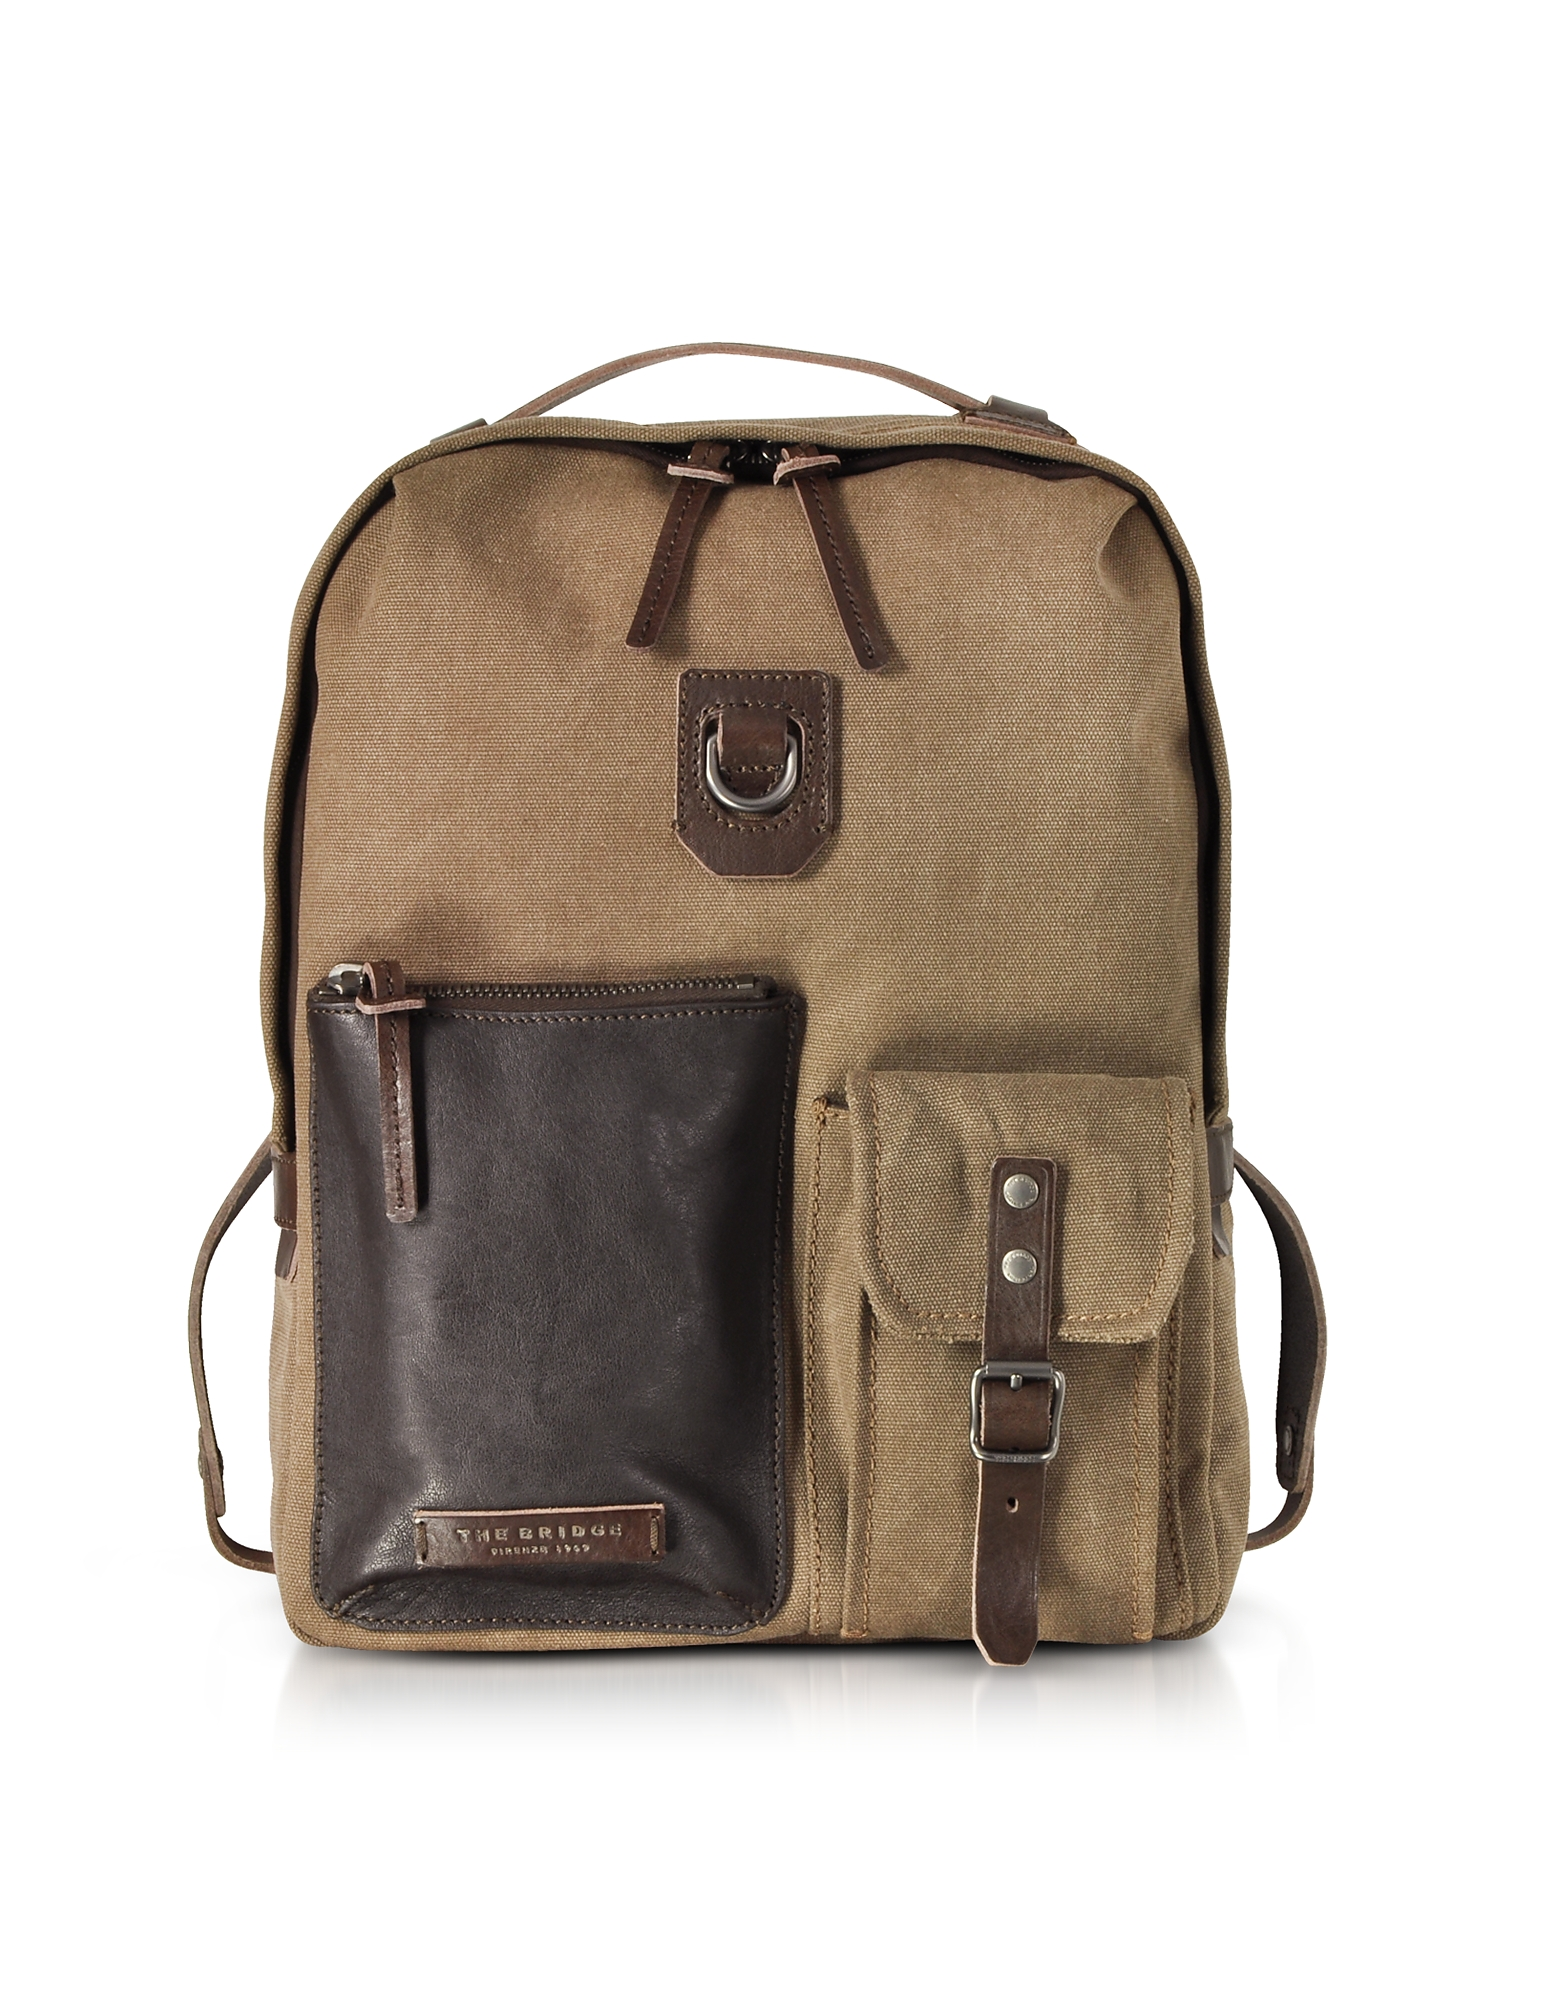 Image of The Bridge Designer Backpacks, Carver-D Canvas and Leather Men's Backpack w/Top Zip